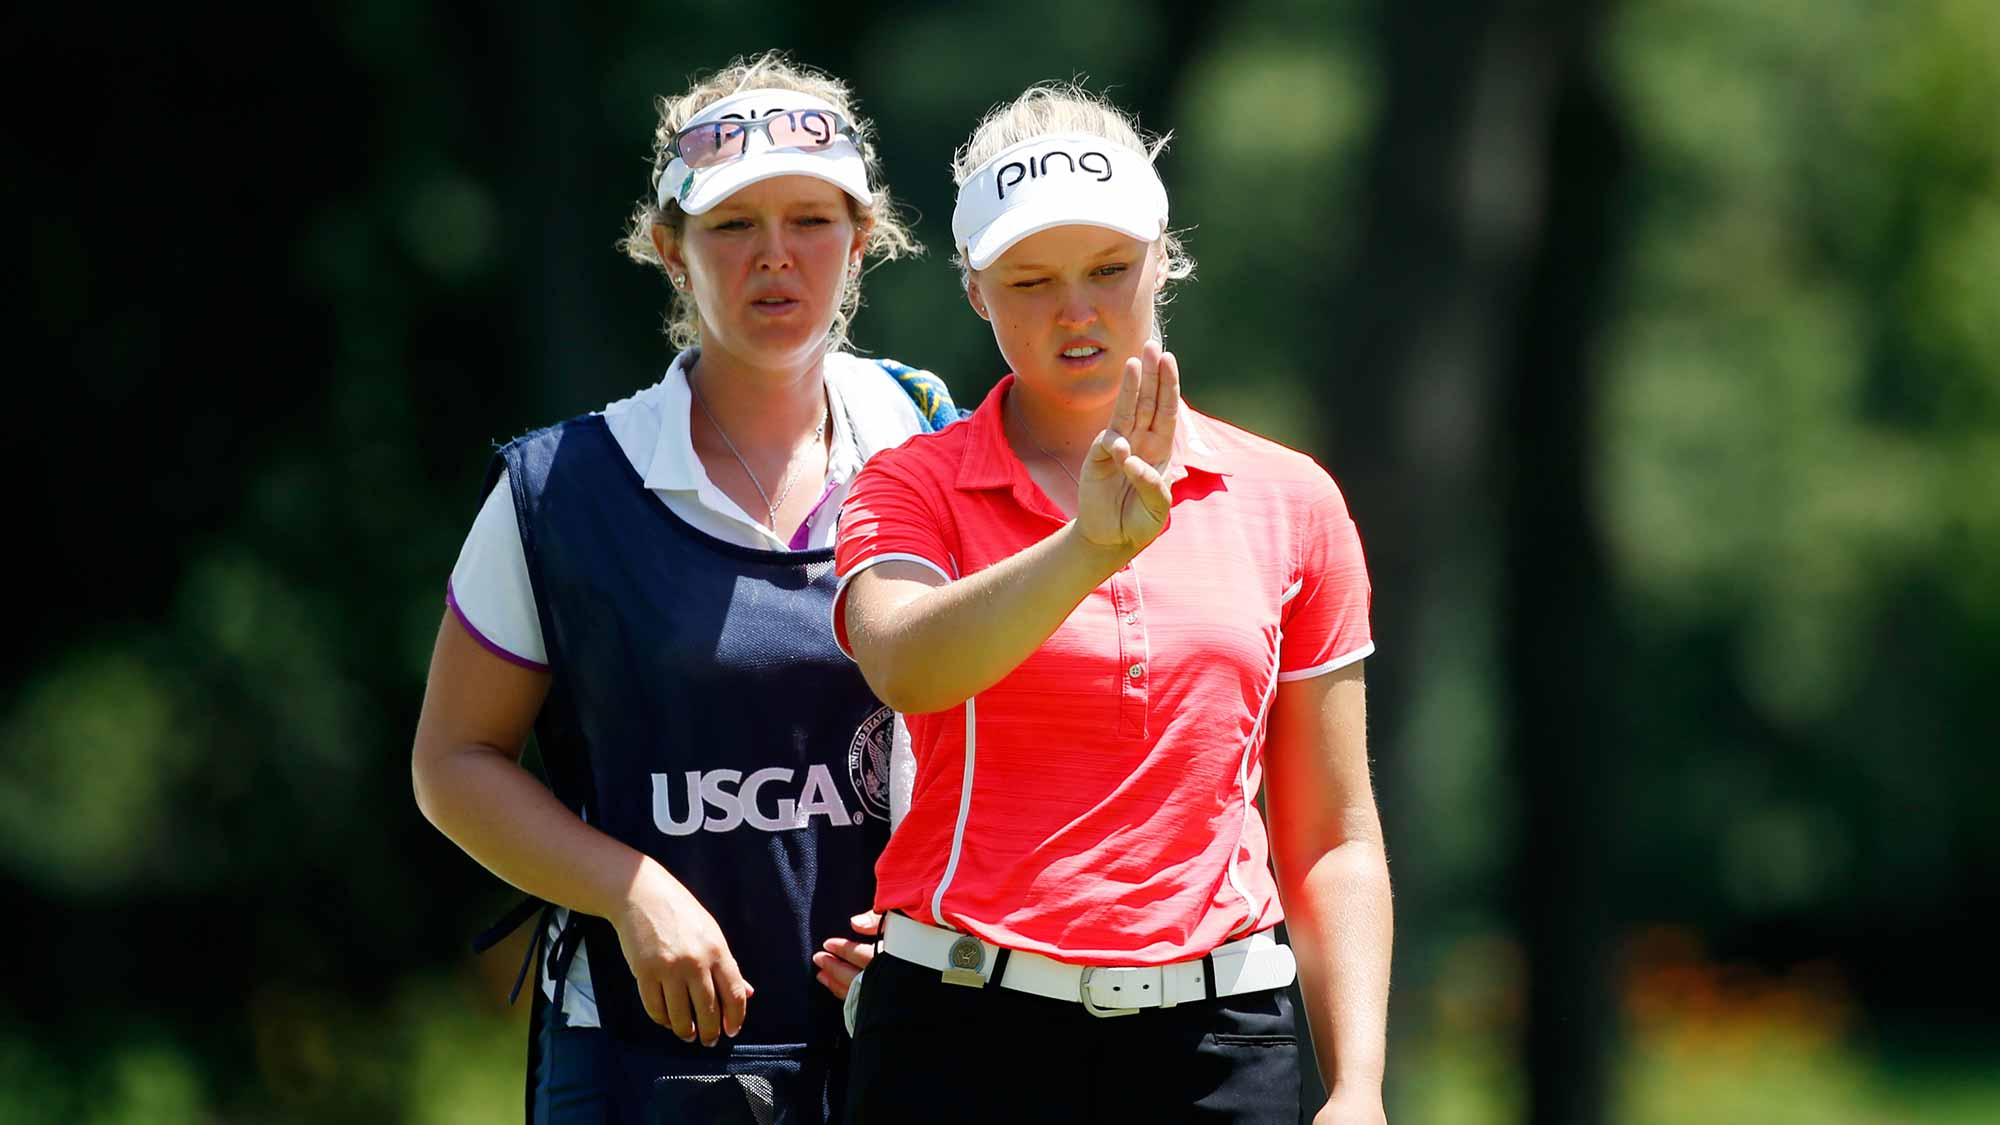 Brooke Henderson of Canada lines up a putt with her sisiter/caddie Brittany on the 16th green during the second round of the U.S. Women's Open at Lancaster Country Club